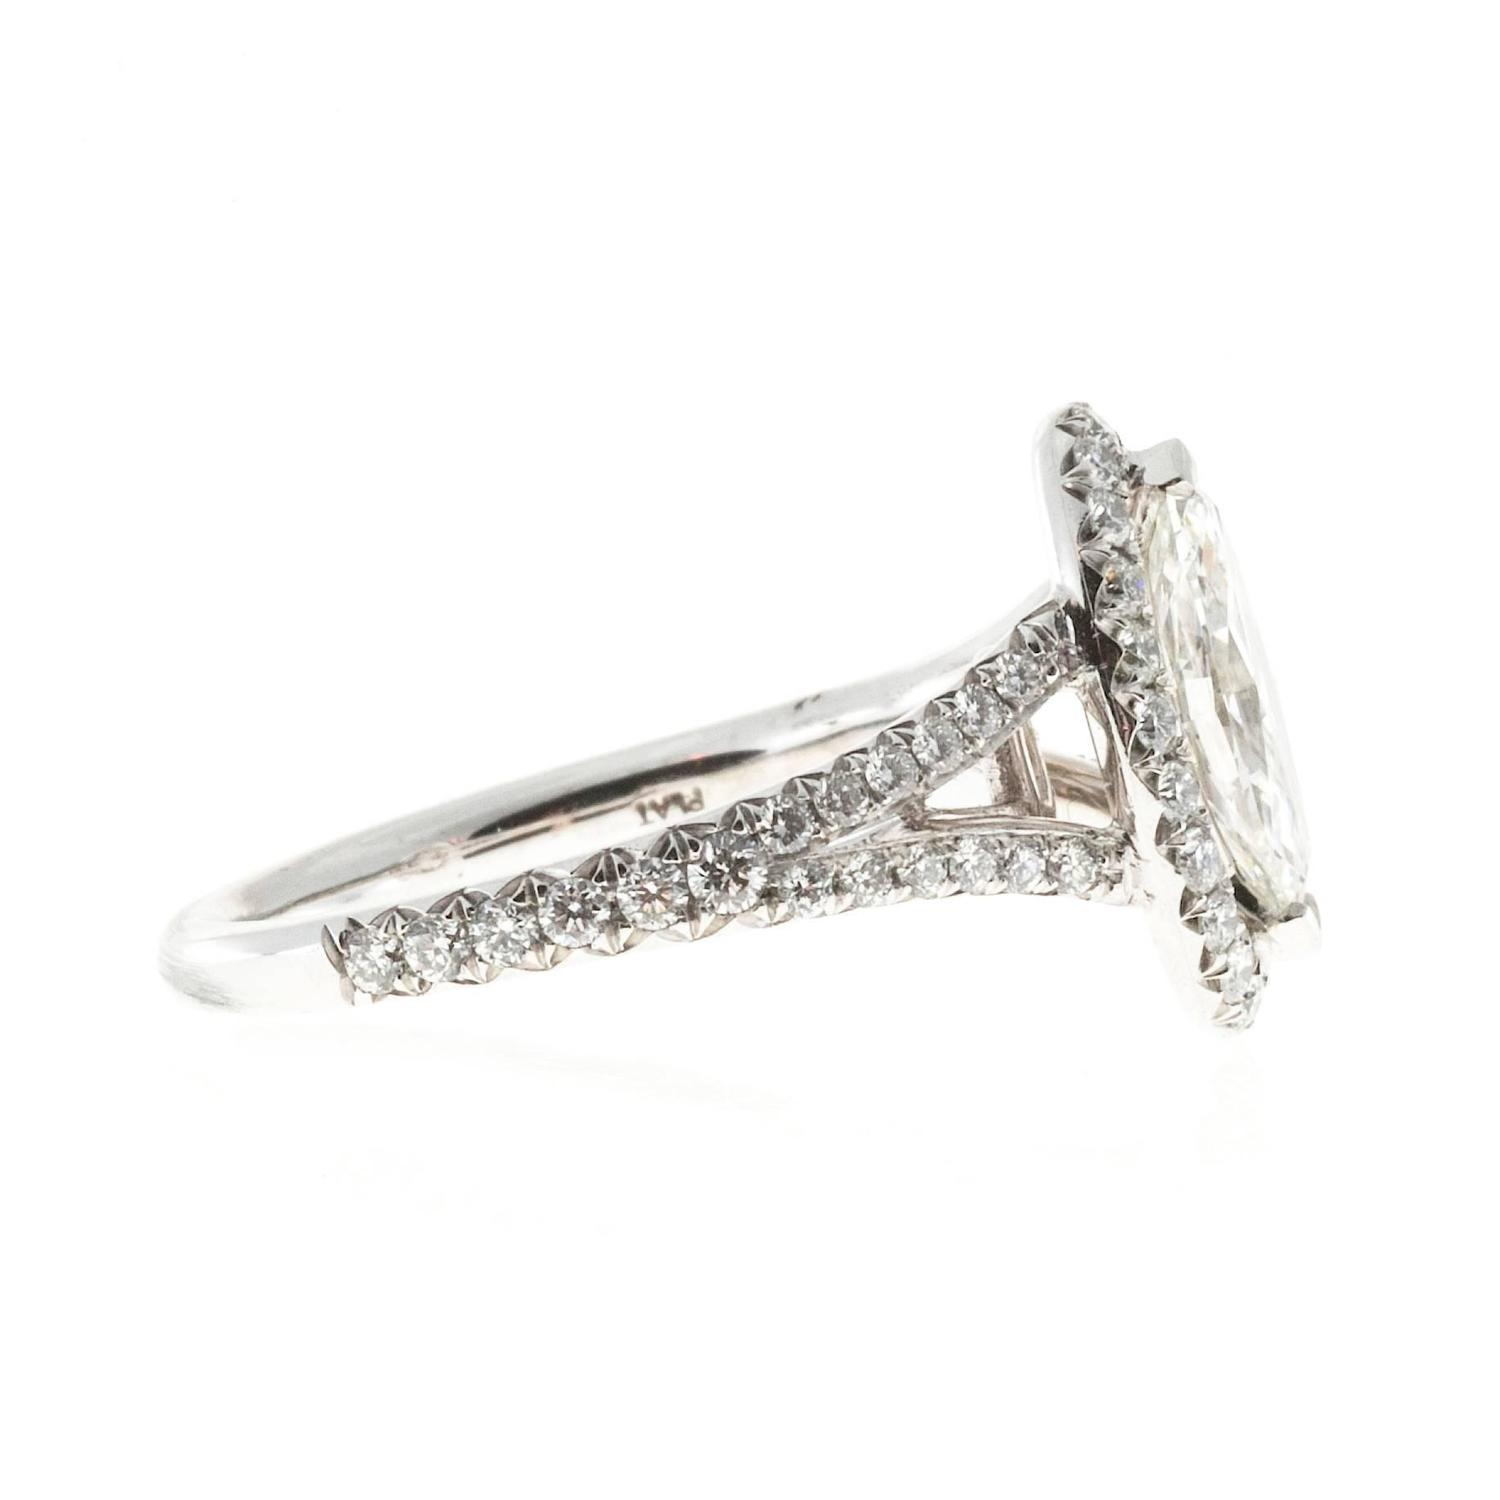 Peter Suchy Oval Halo Marquise Diamond Engagement Ring For Sale at 1stdibs